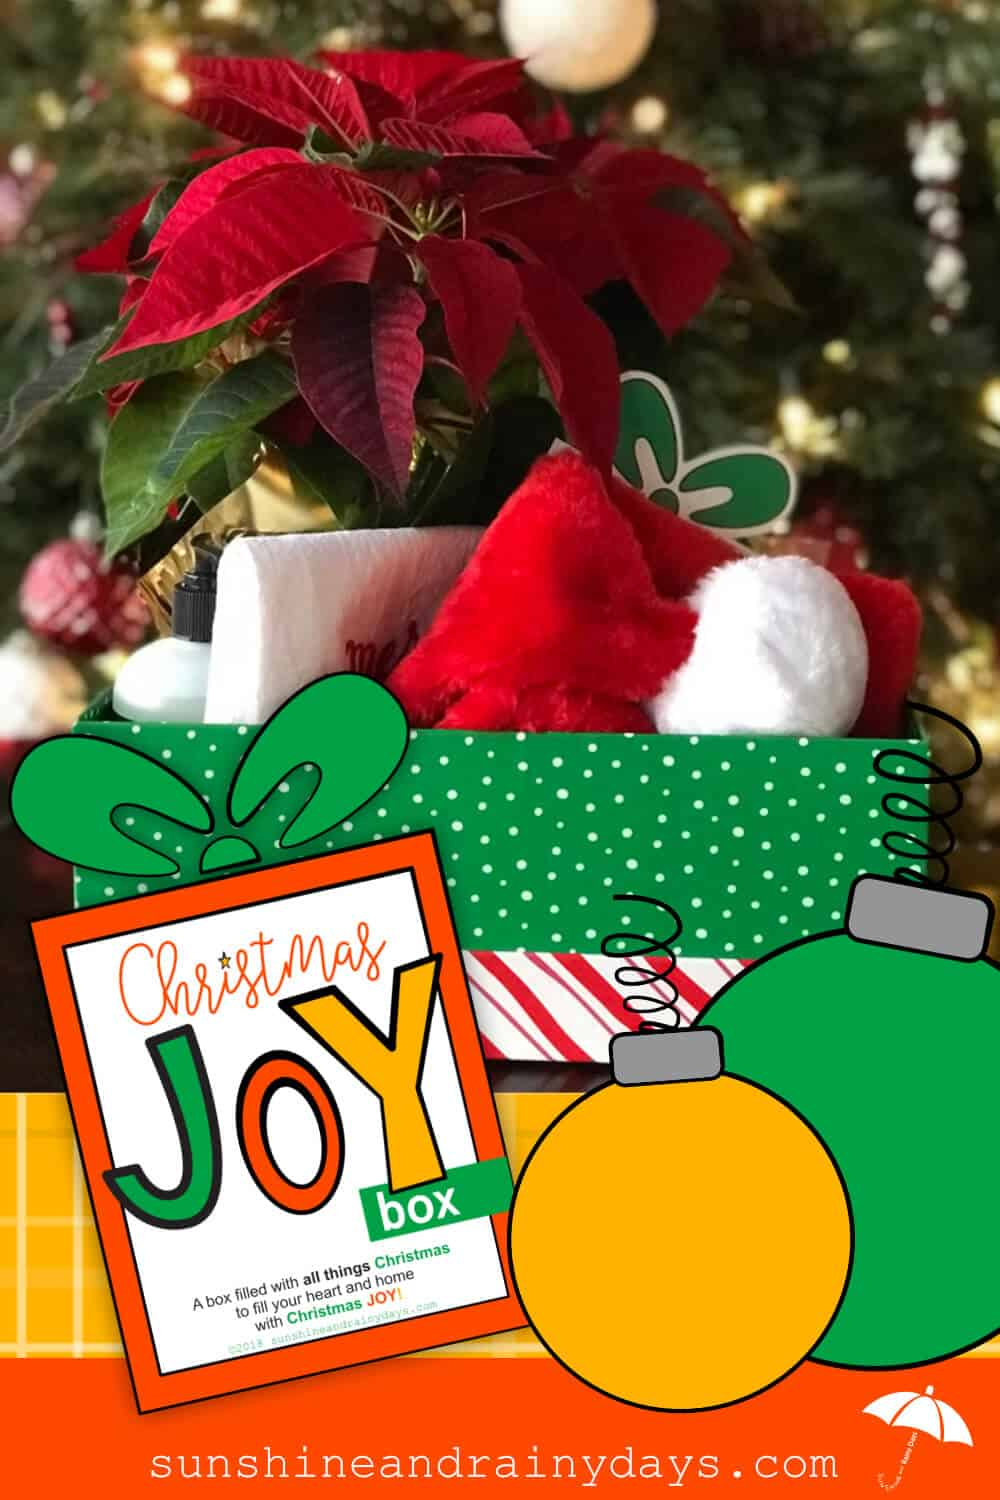 A box filled with all things Christmas to fill your recipient's heart and home with Christmas Joy! Christmas Joy | Christmas Printables | #ChristmasPrintables #ChristmasGiftIdeas #SARD